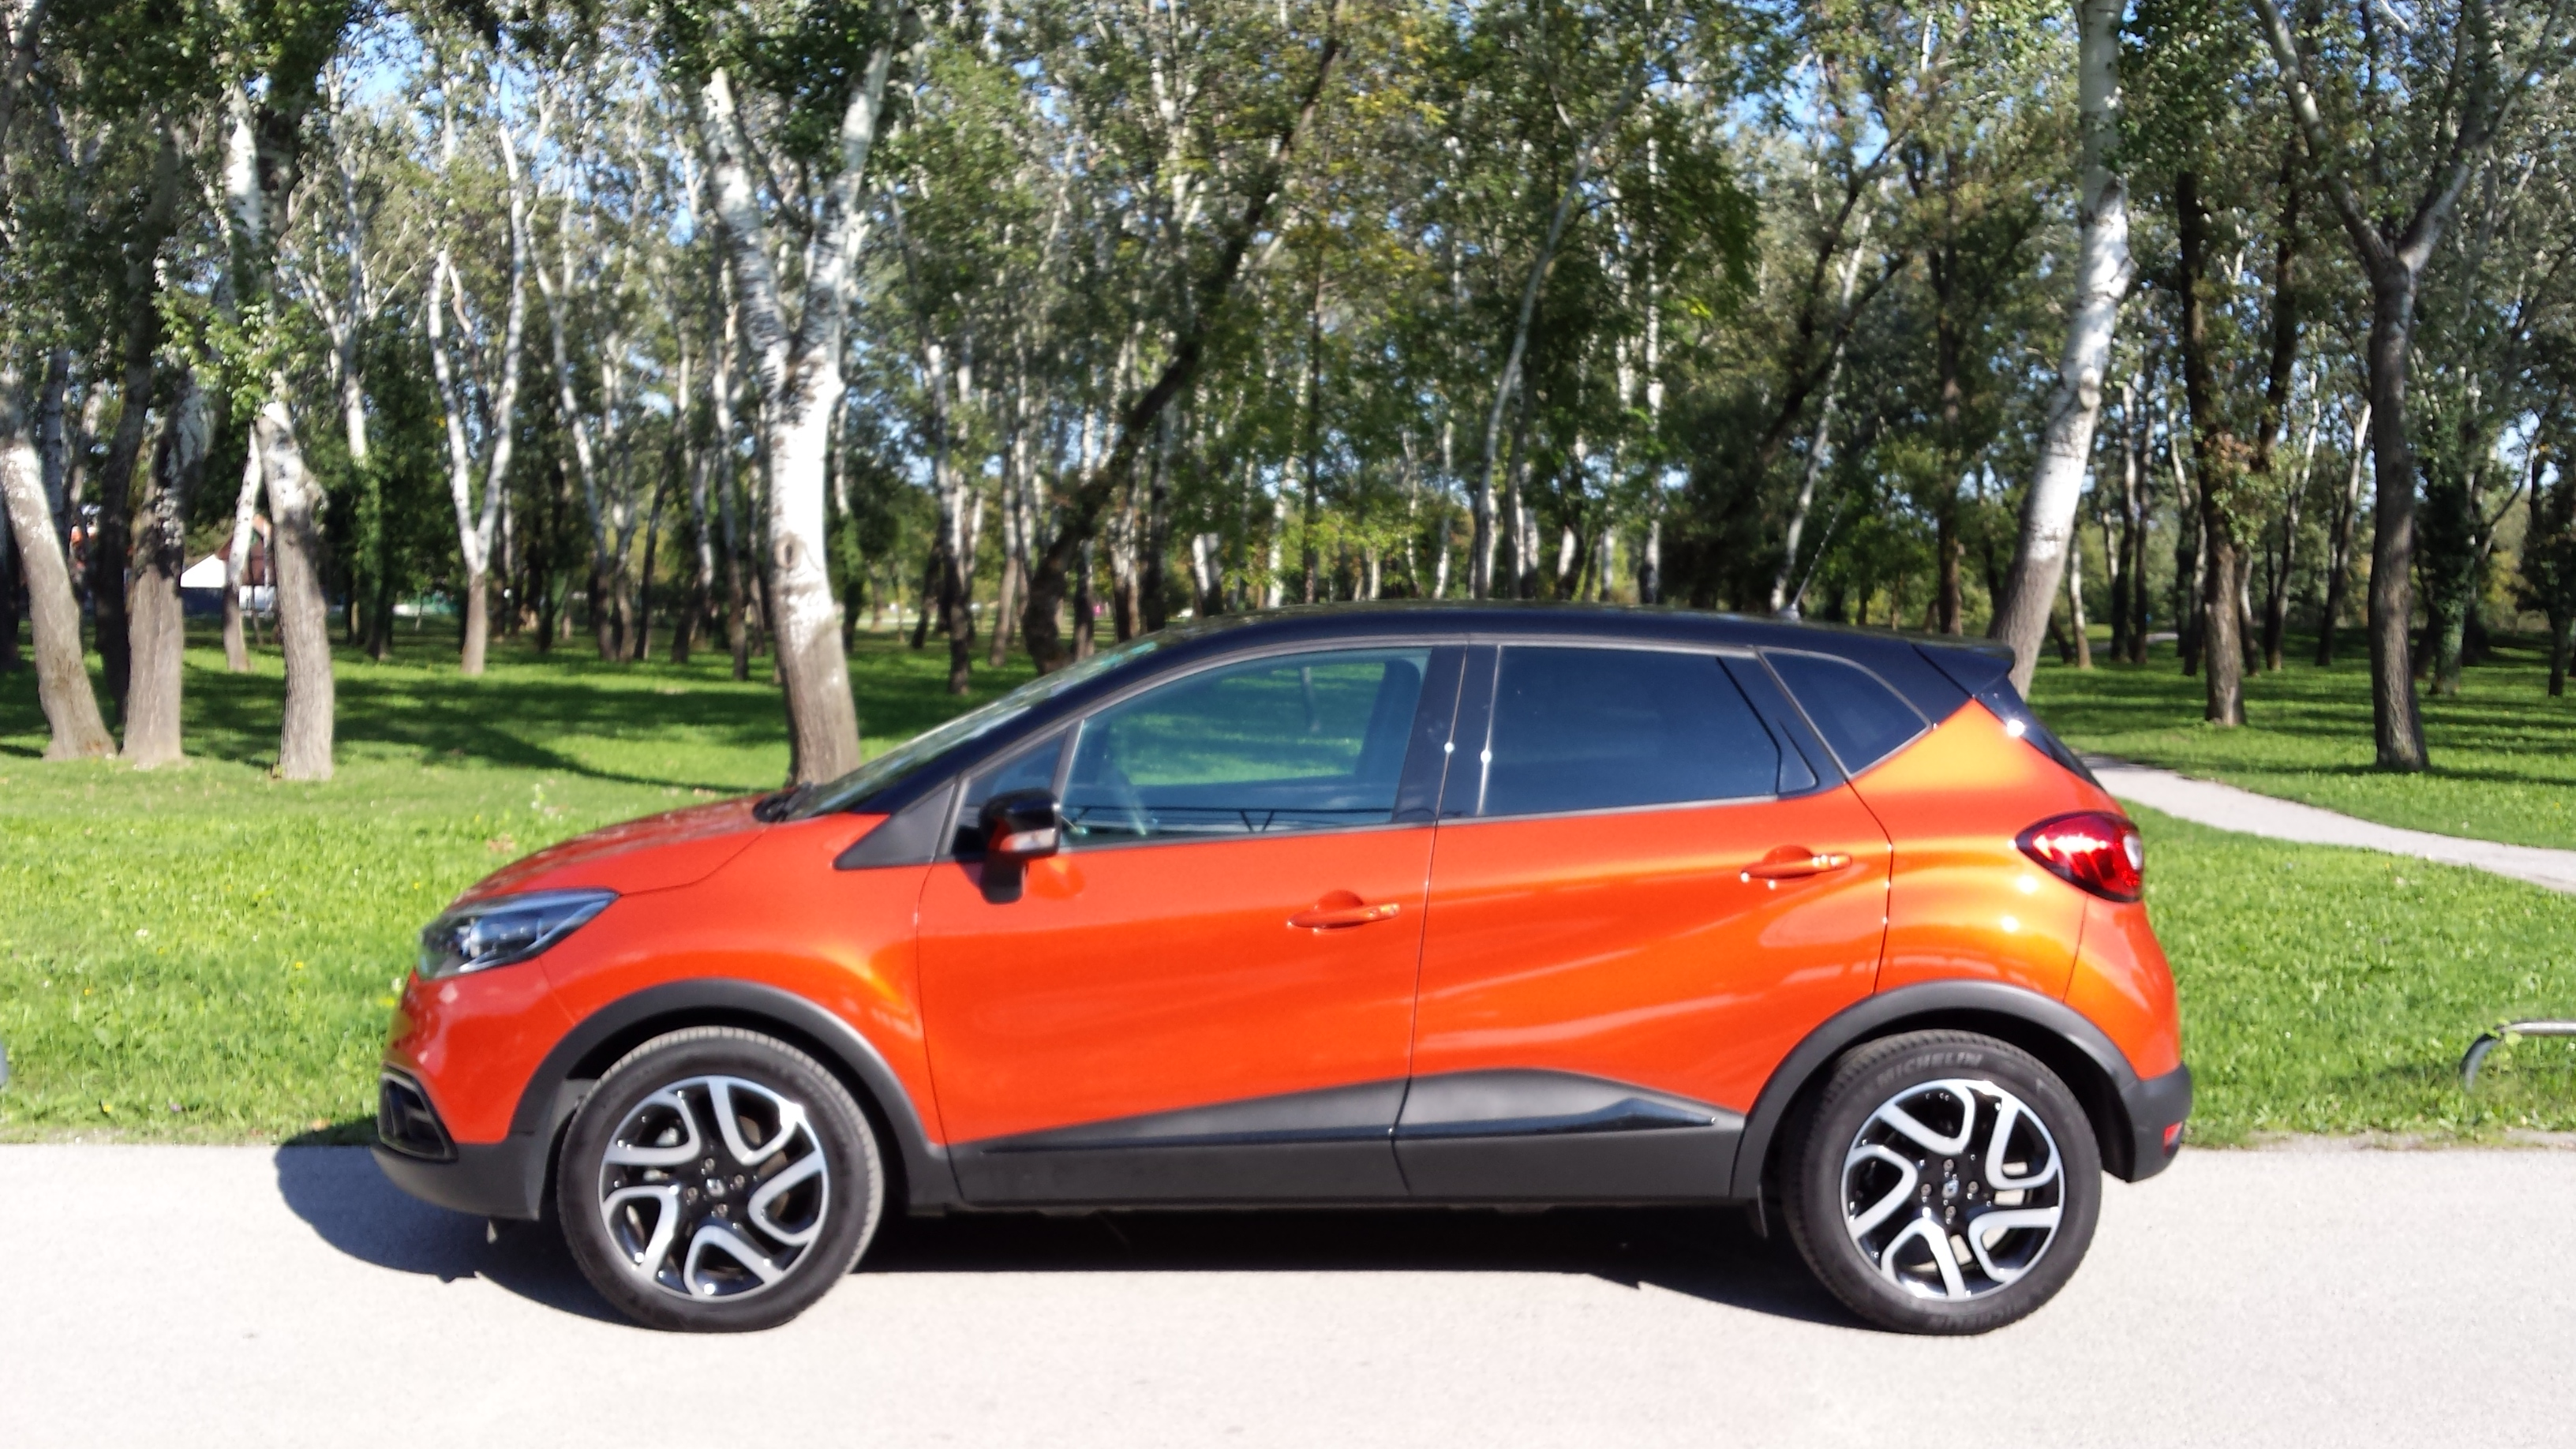 renault captur 1 5 dci 90 dinamique test najave novosti vidiauto vidiauto. Black Bedroom Furniture Sets. Home Design Ideas